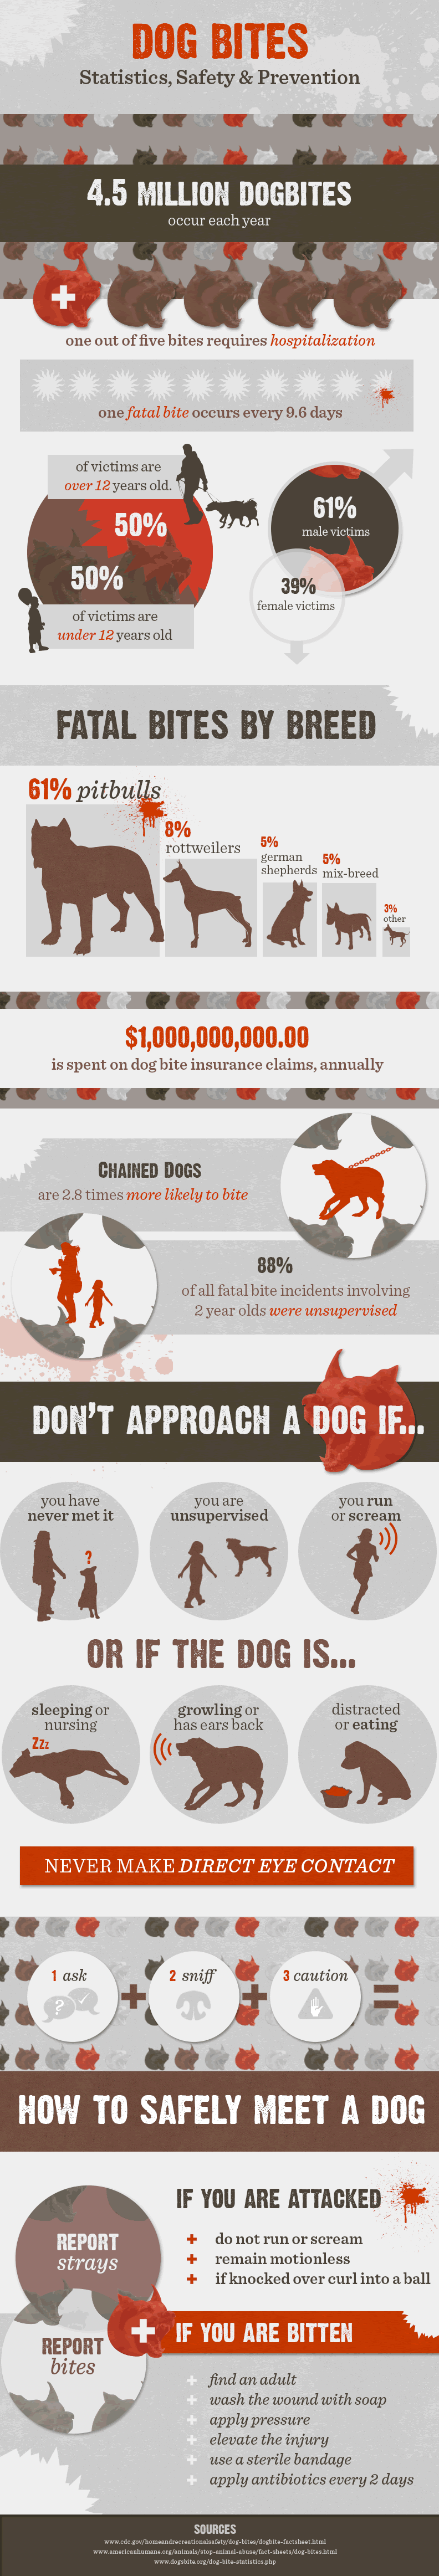 Dog Bite Statistics and Safety Infographic